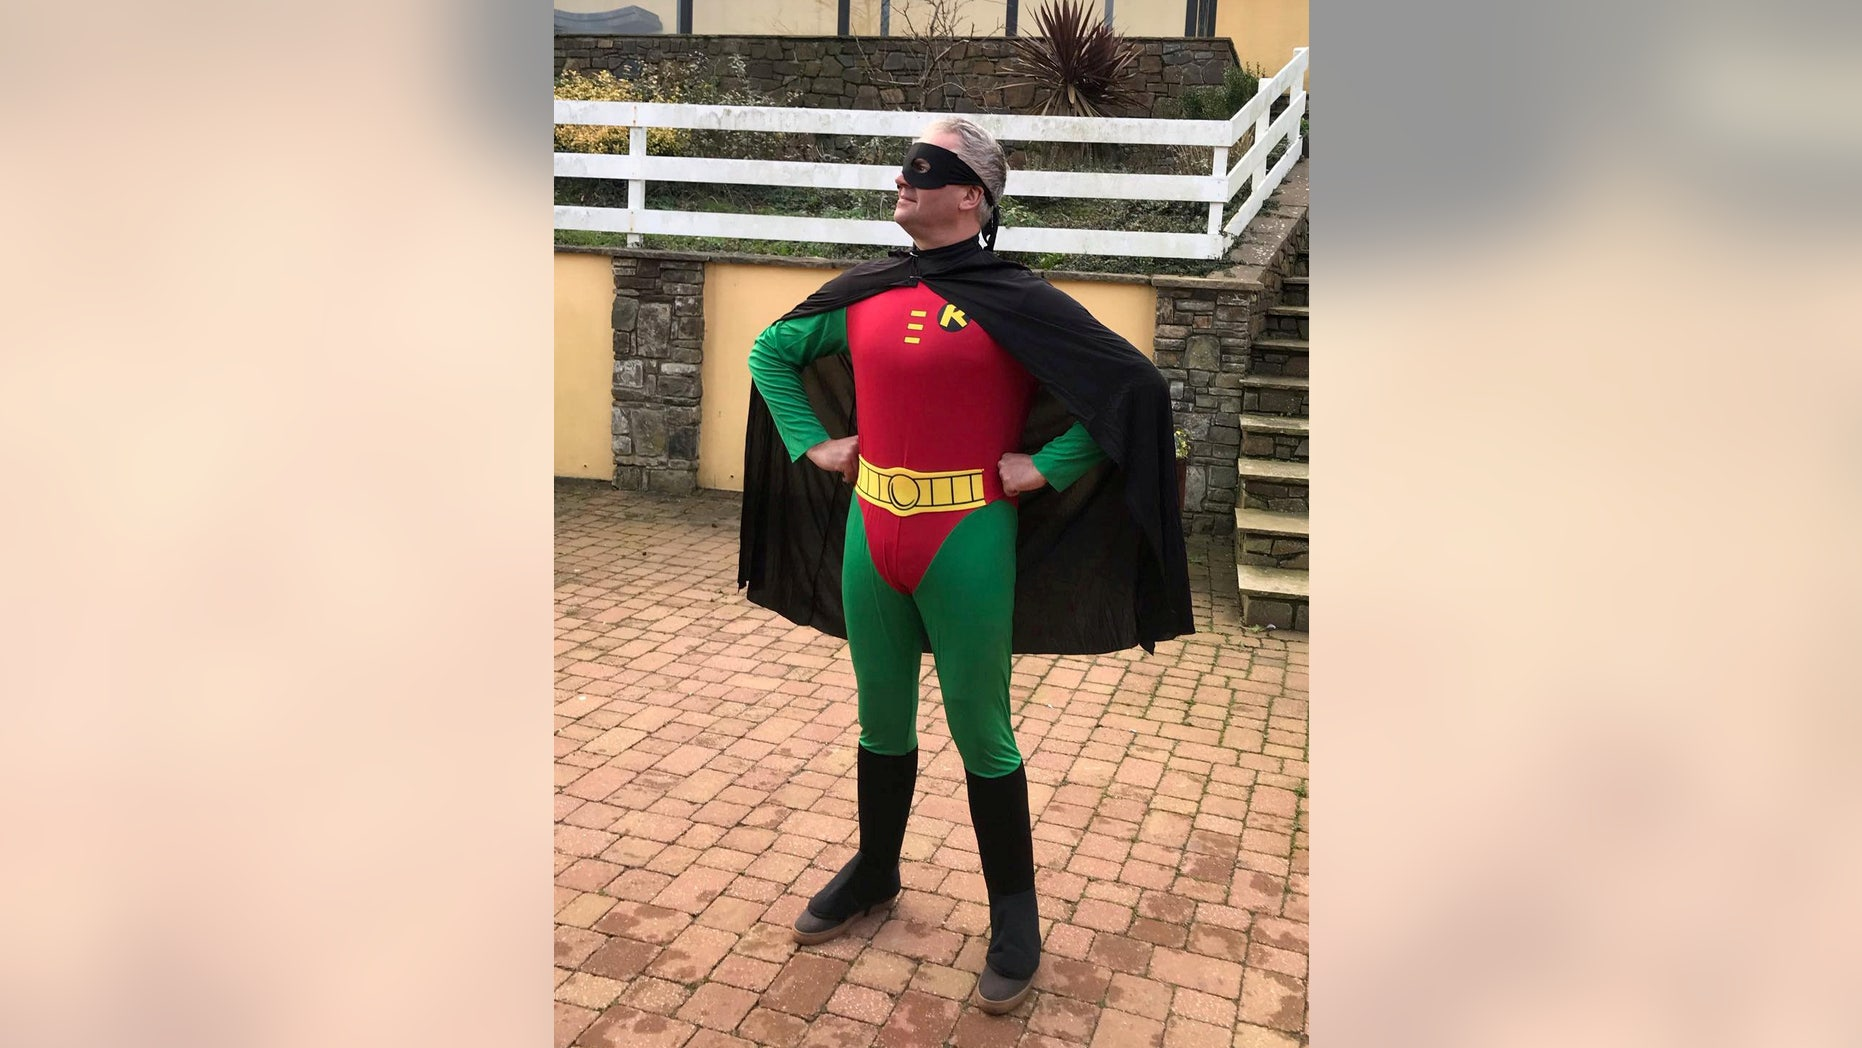 Rob Braddick, the owner of a restaurant in Devon, England, says three diners ran out of his place without paying a nearly $285 bill. He later donned a Robin costume on Facebook while asking for leads.